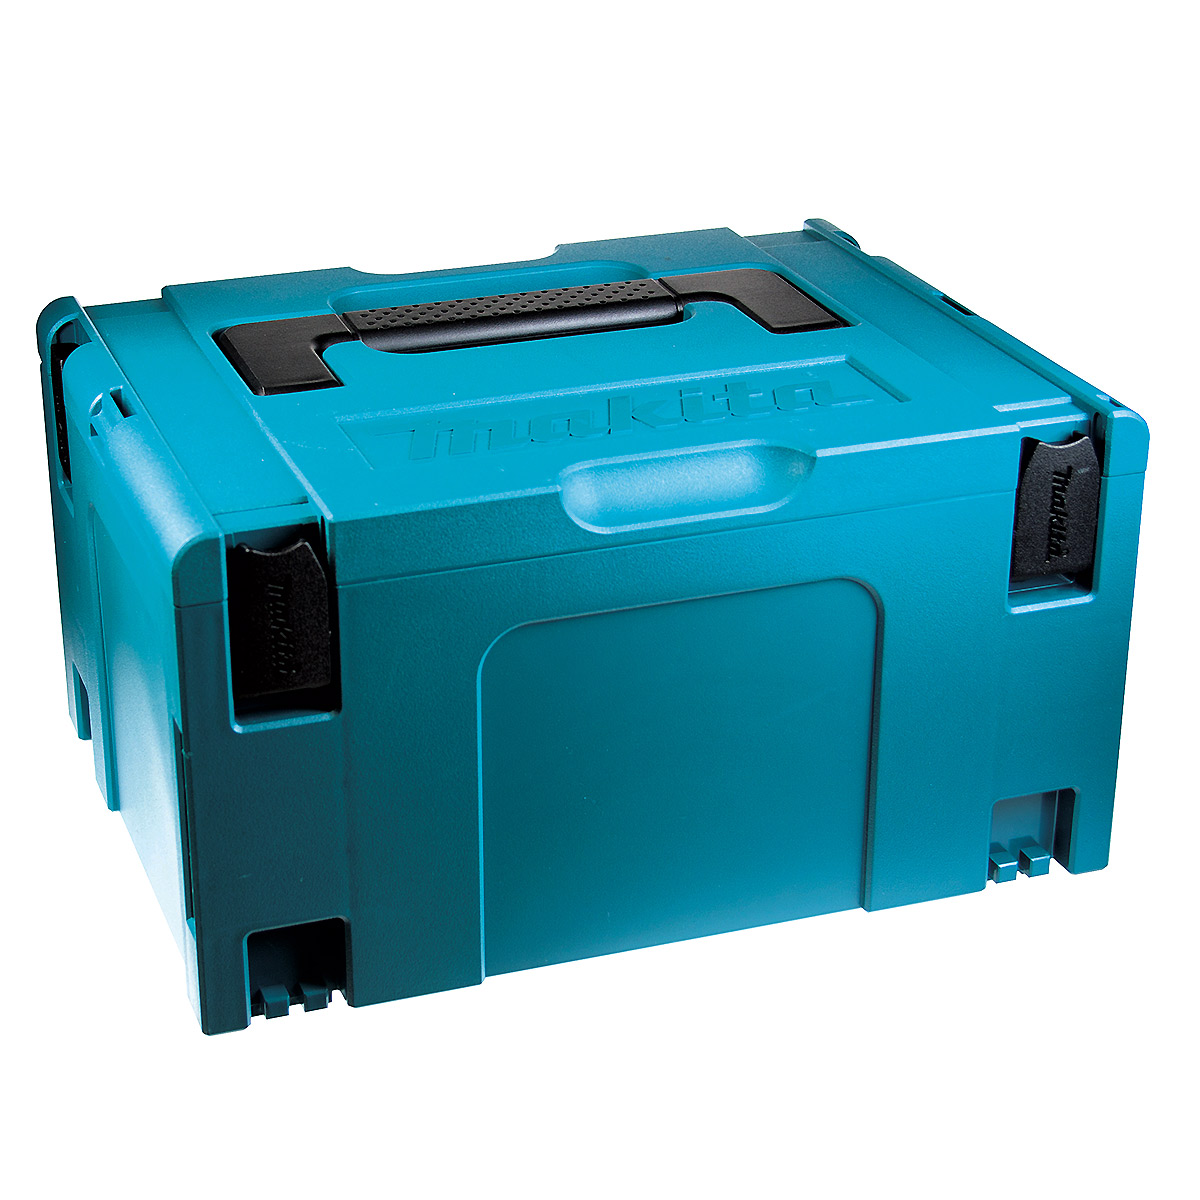 Makita systainer 395x295x210 TYP 3 821551-8